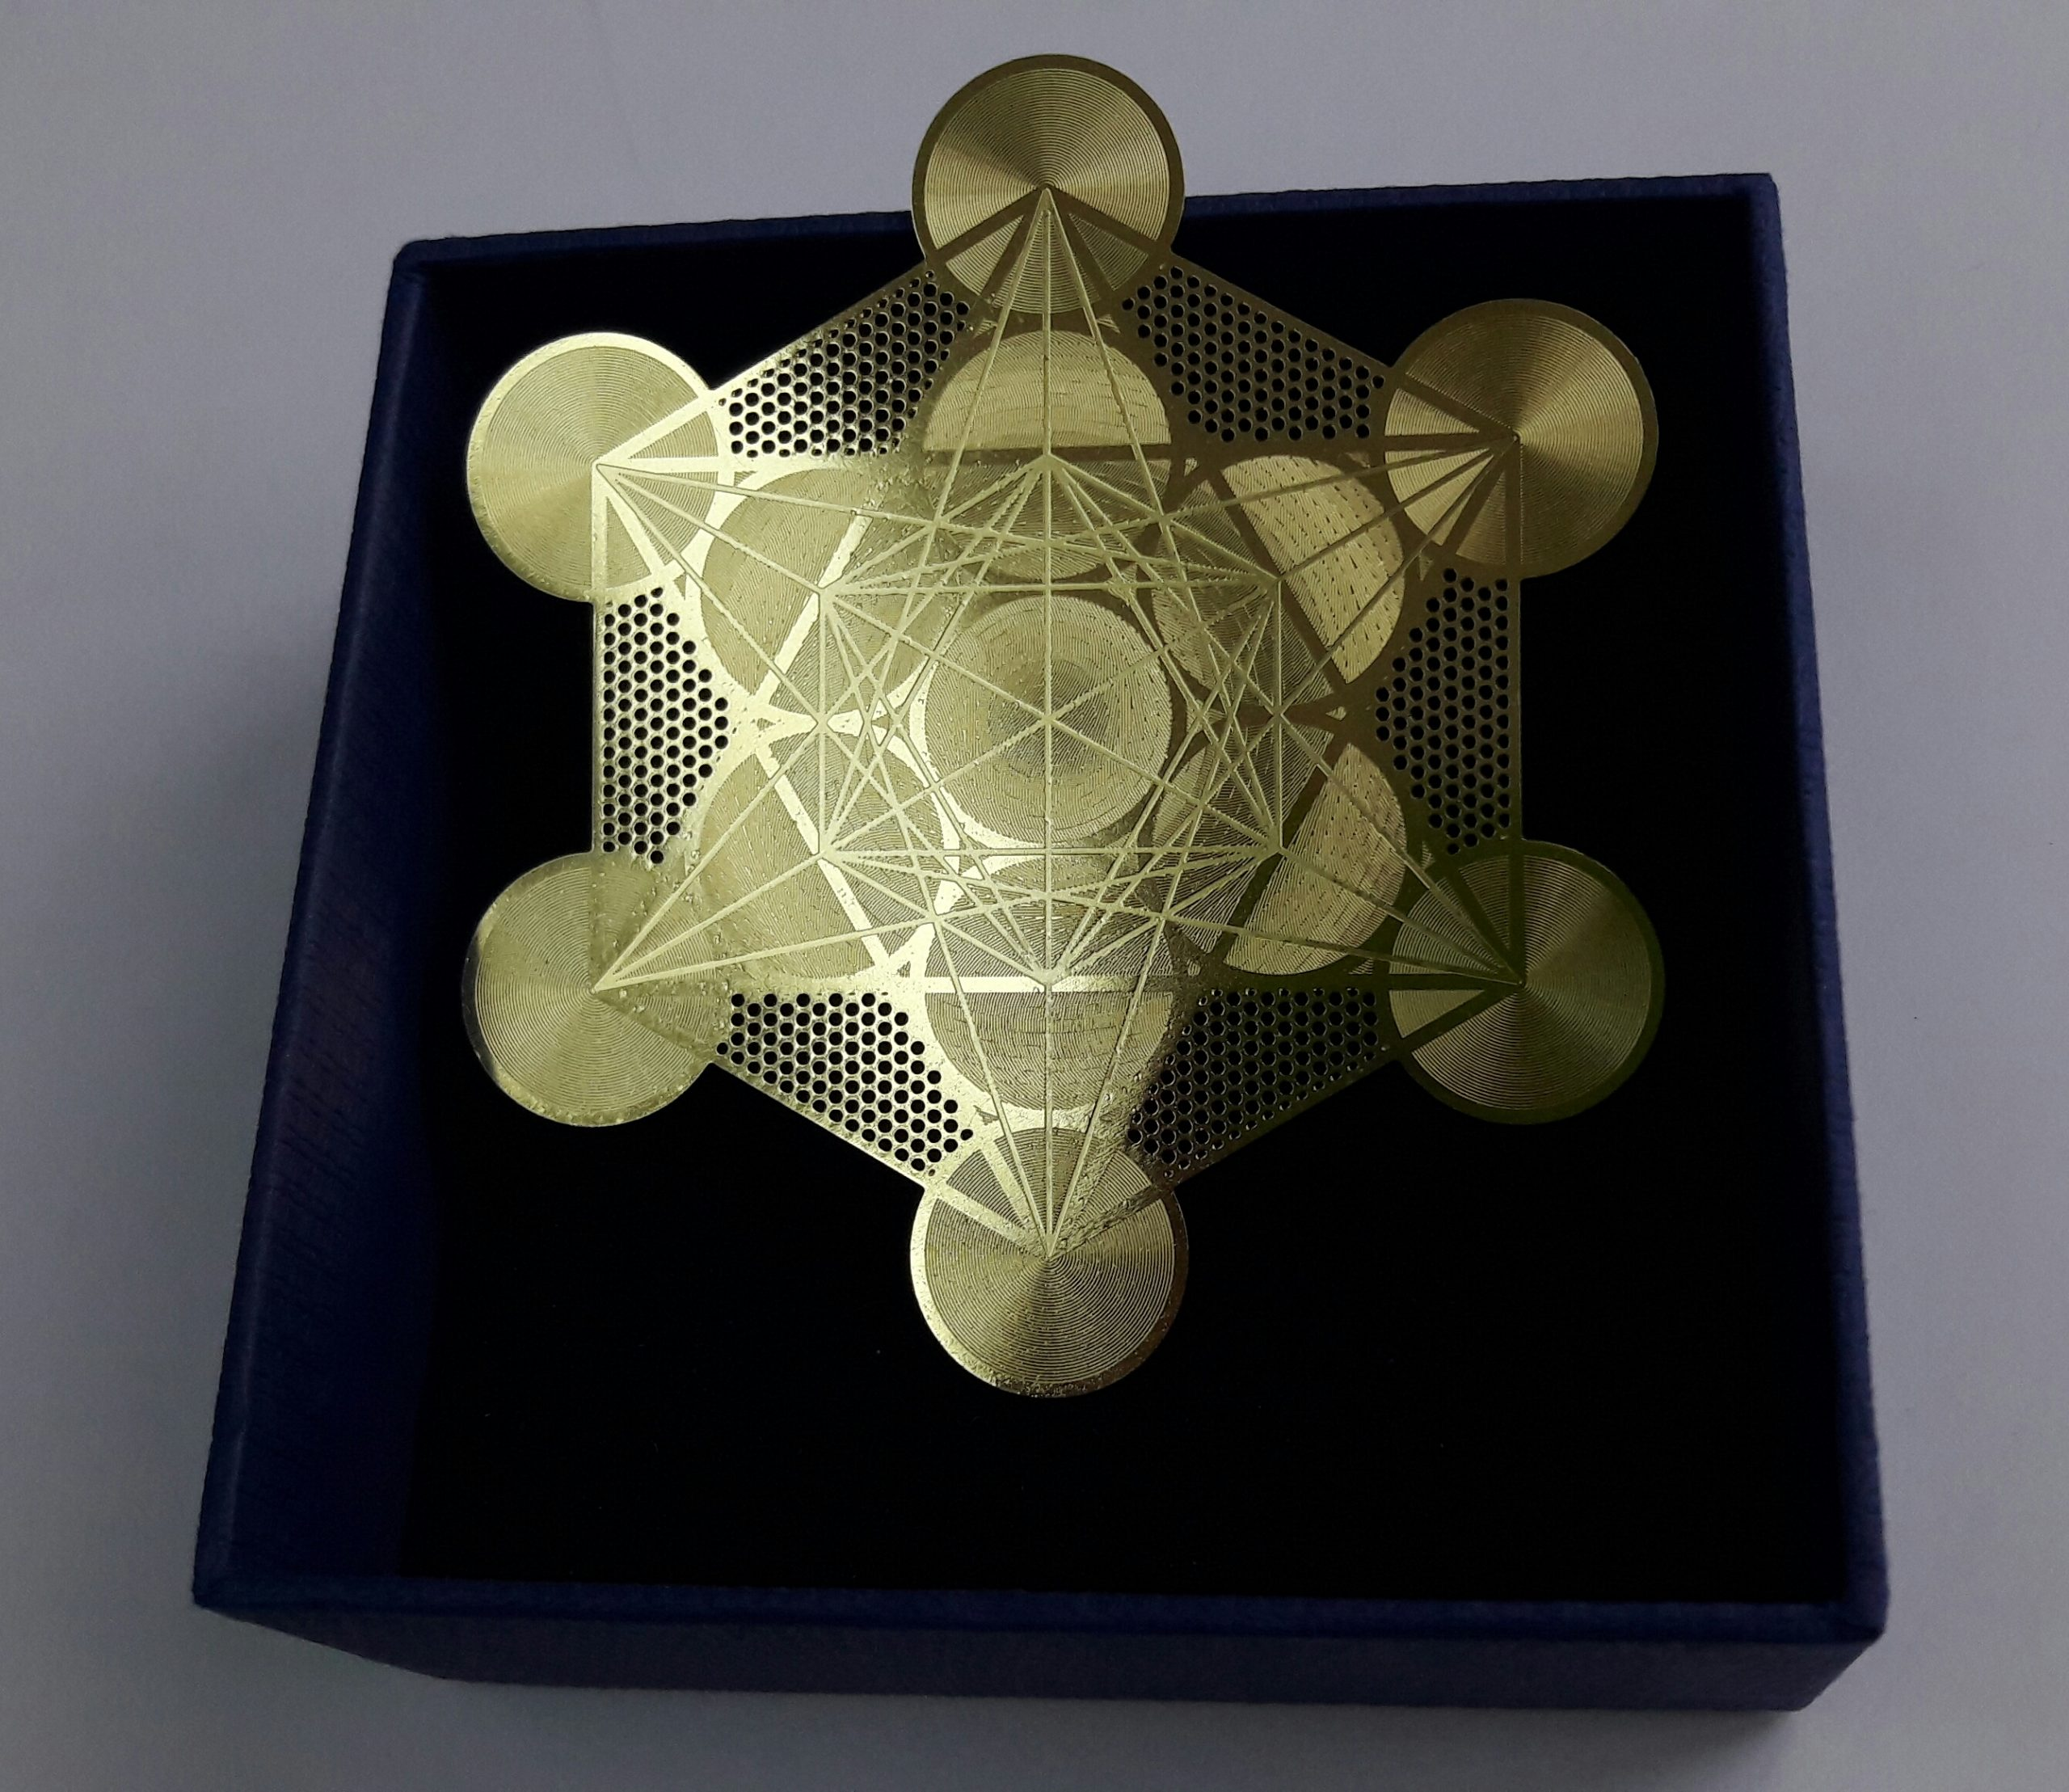 Metatron Cube Card